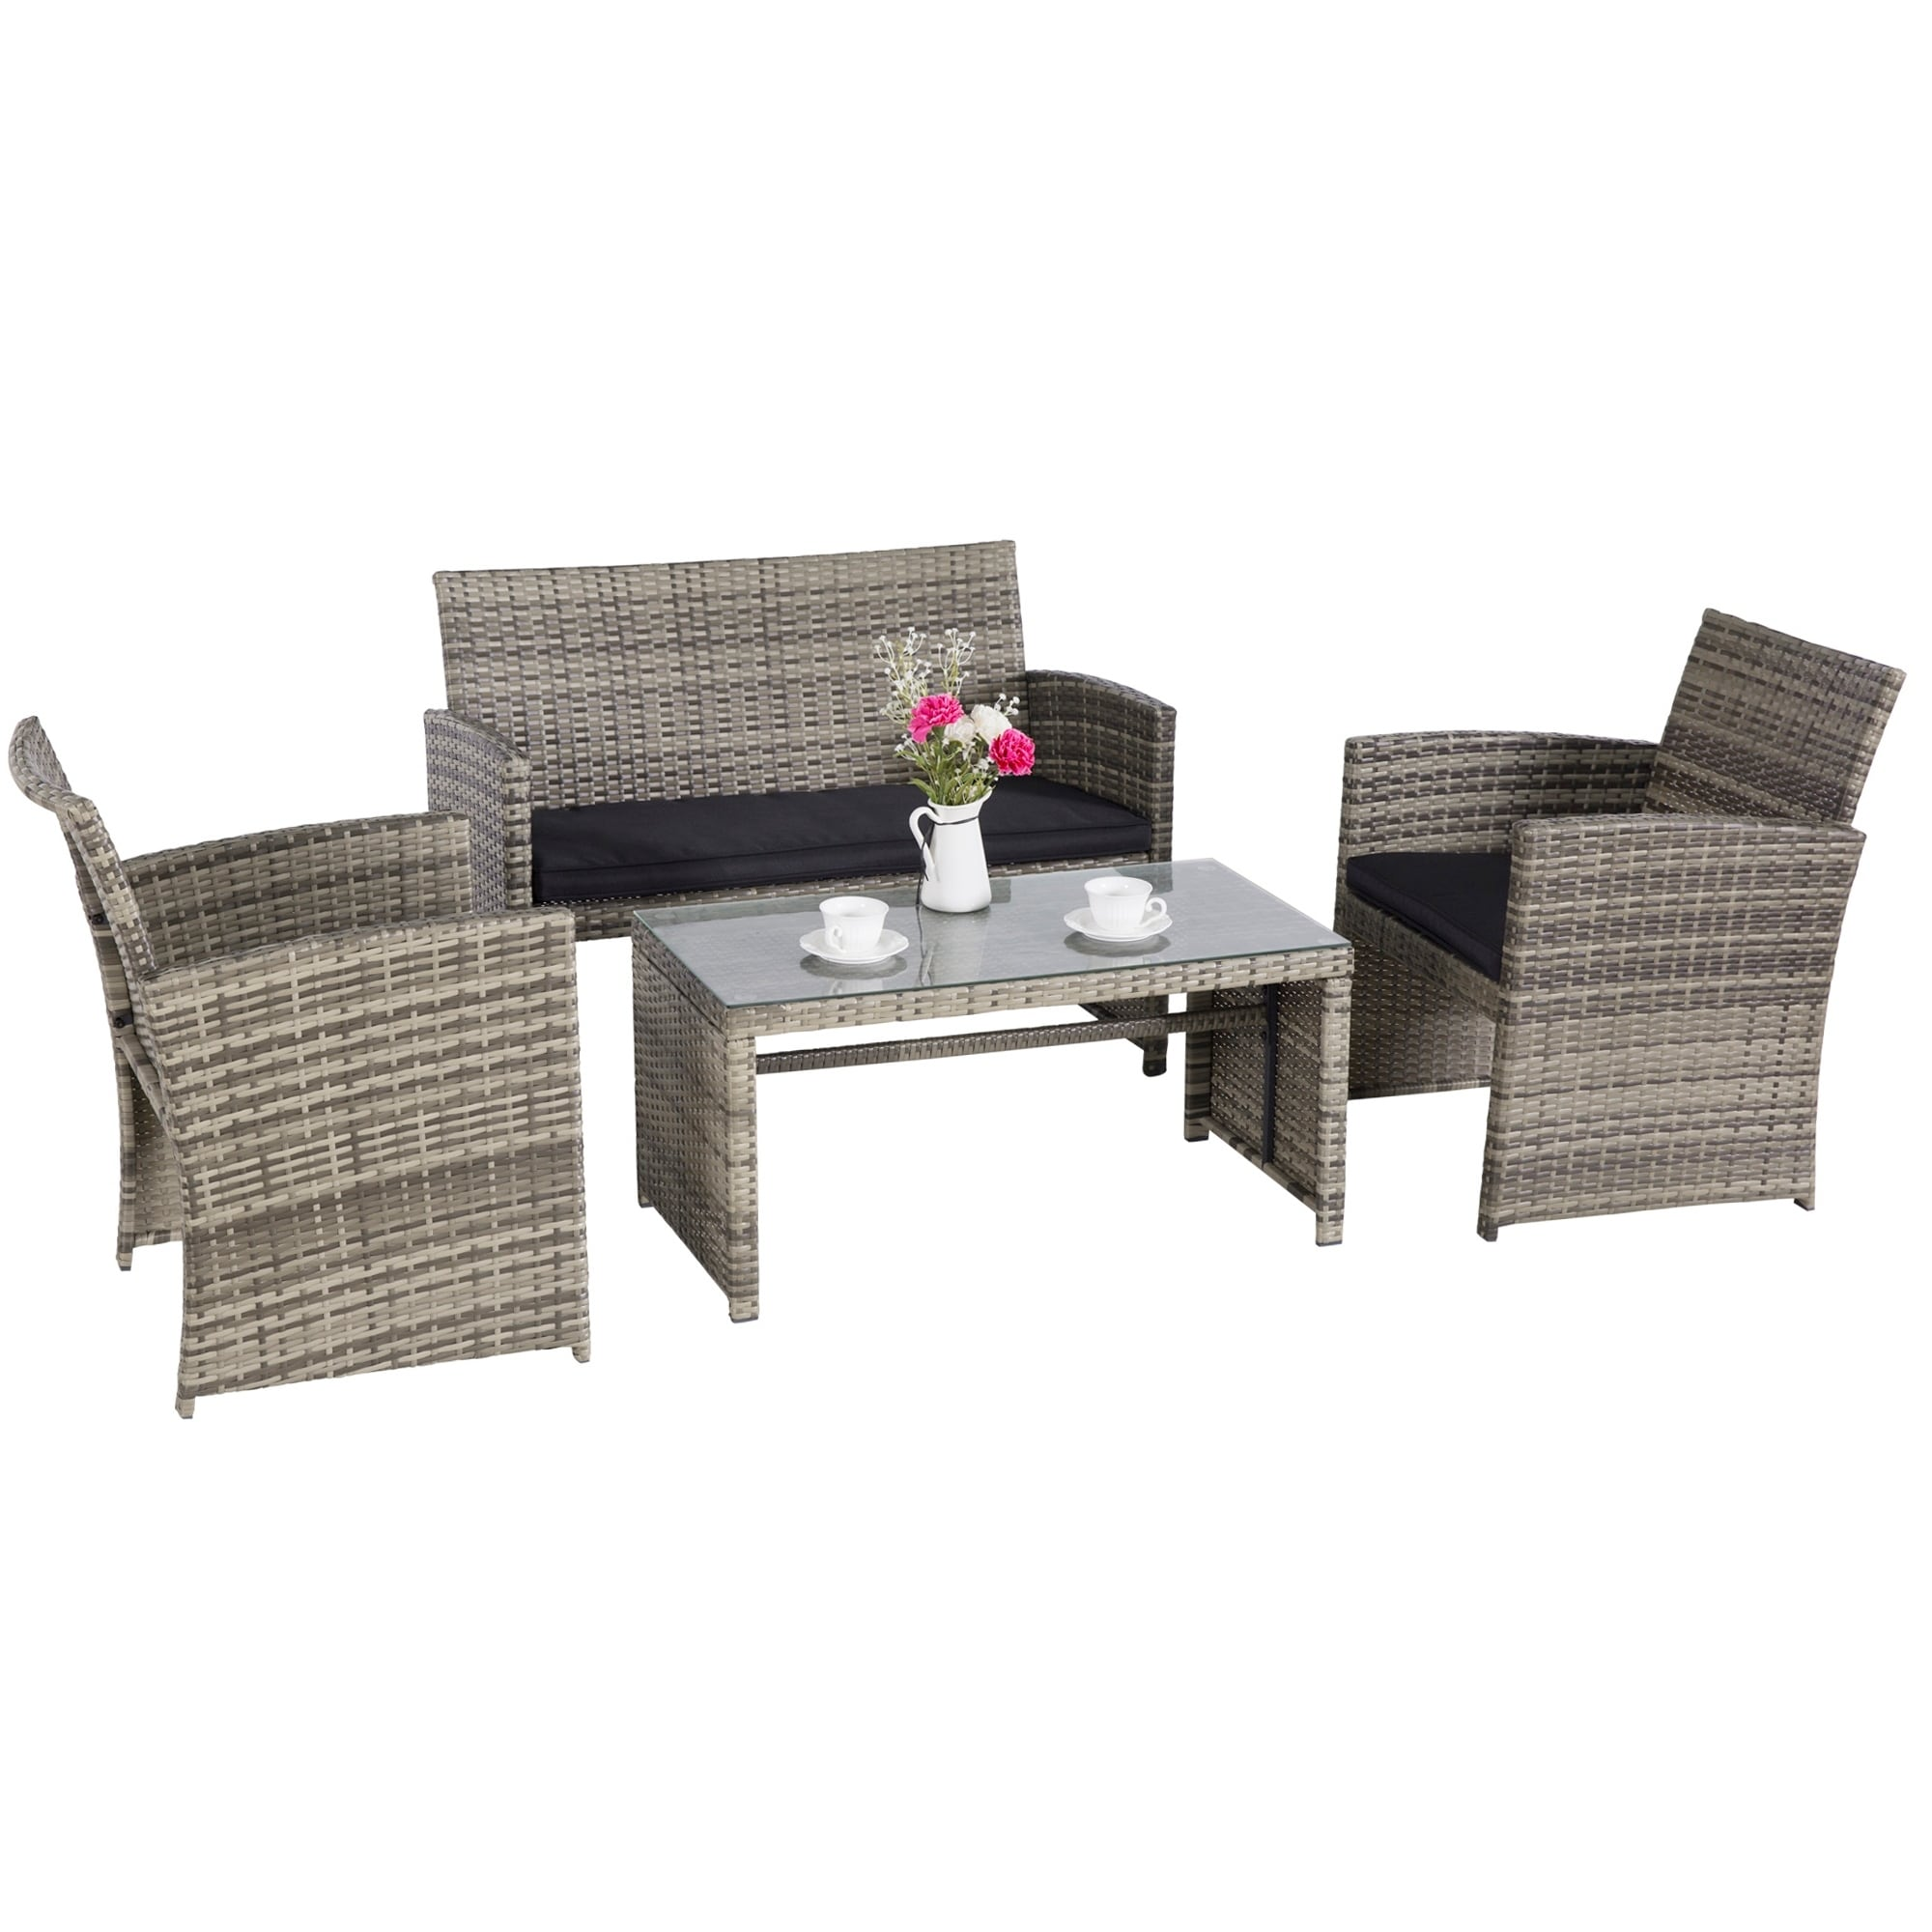 Garden Sofa Two Seater 4 Pc Rattan Furniture Set Patio Conversation Set Sectional Wicker Furniture Outdoor Garden Sofa Cushioned Set